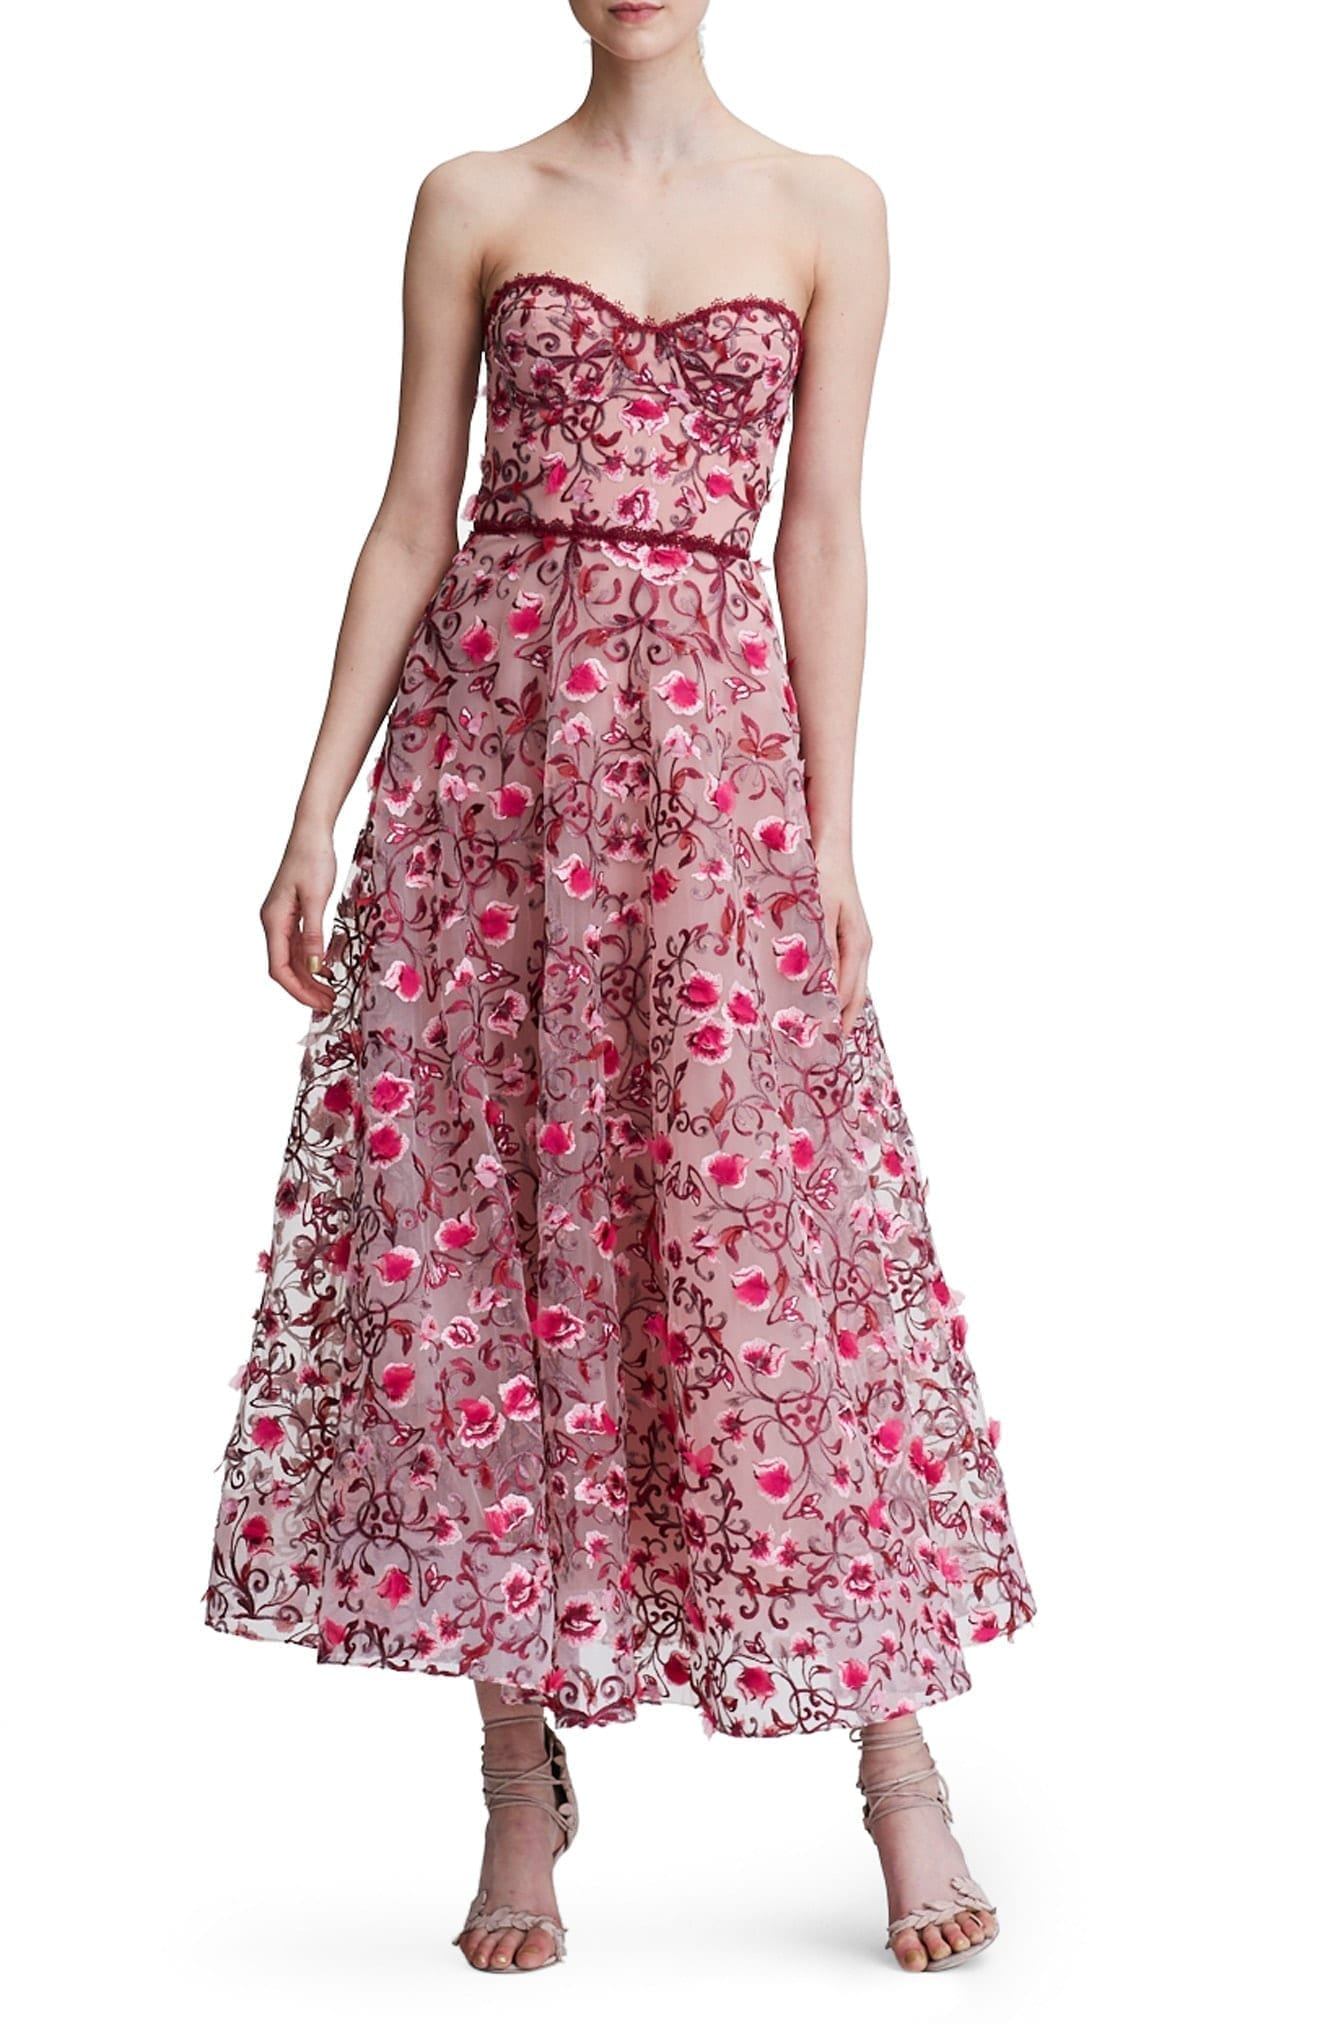 09554b5f MARCHESA NOTTE Floral Embroidered Strapless Tea Length Blush Gown ...